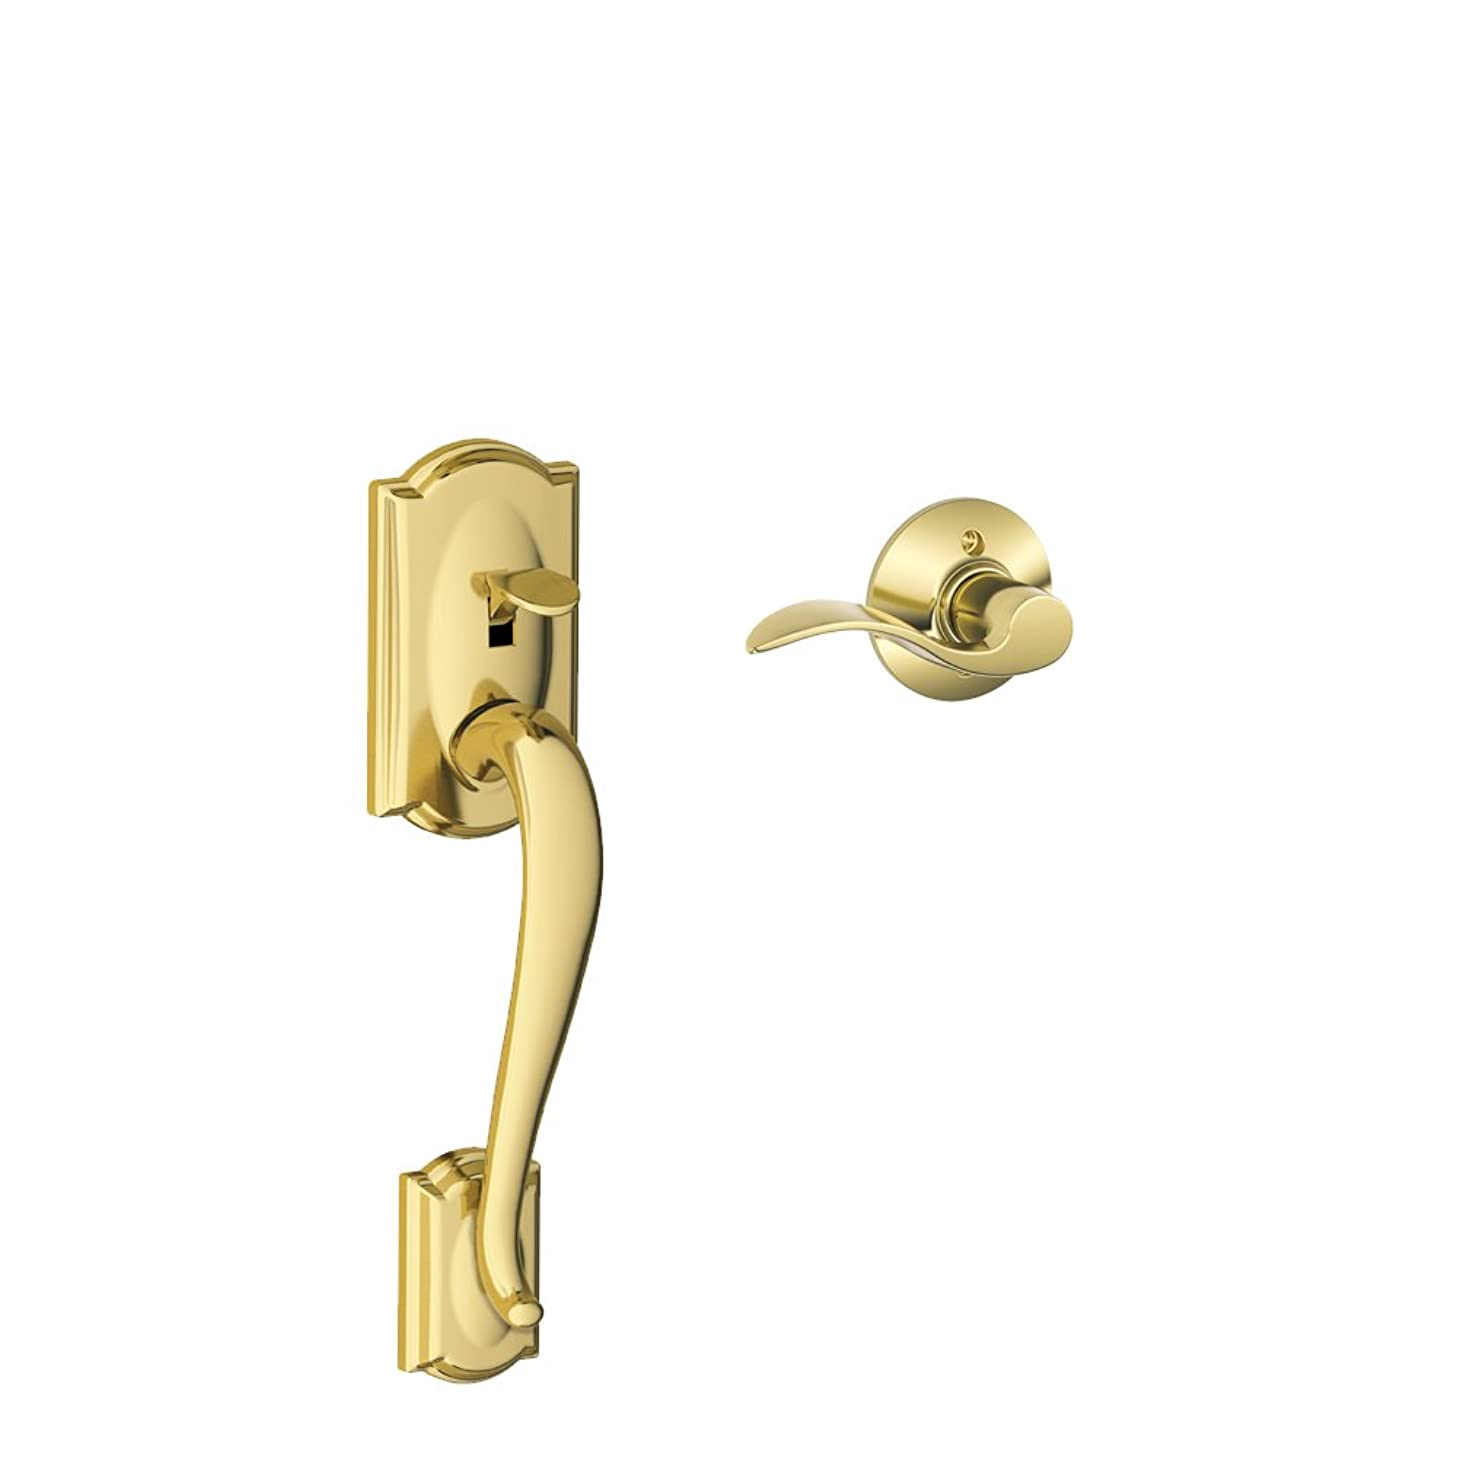 Schlage Lock Company Camelot Front Entry Handle Accent Right-Handed Interior Lever (Bright Brass) FE285 CAM 505 ACC 605 RH